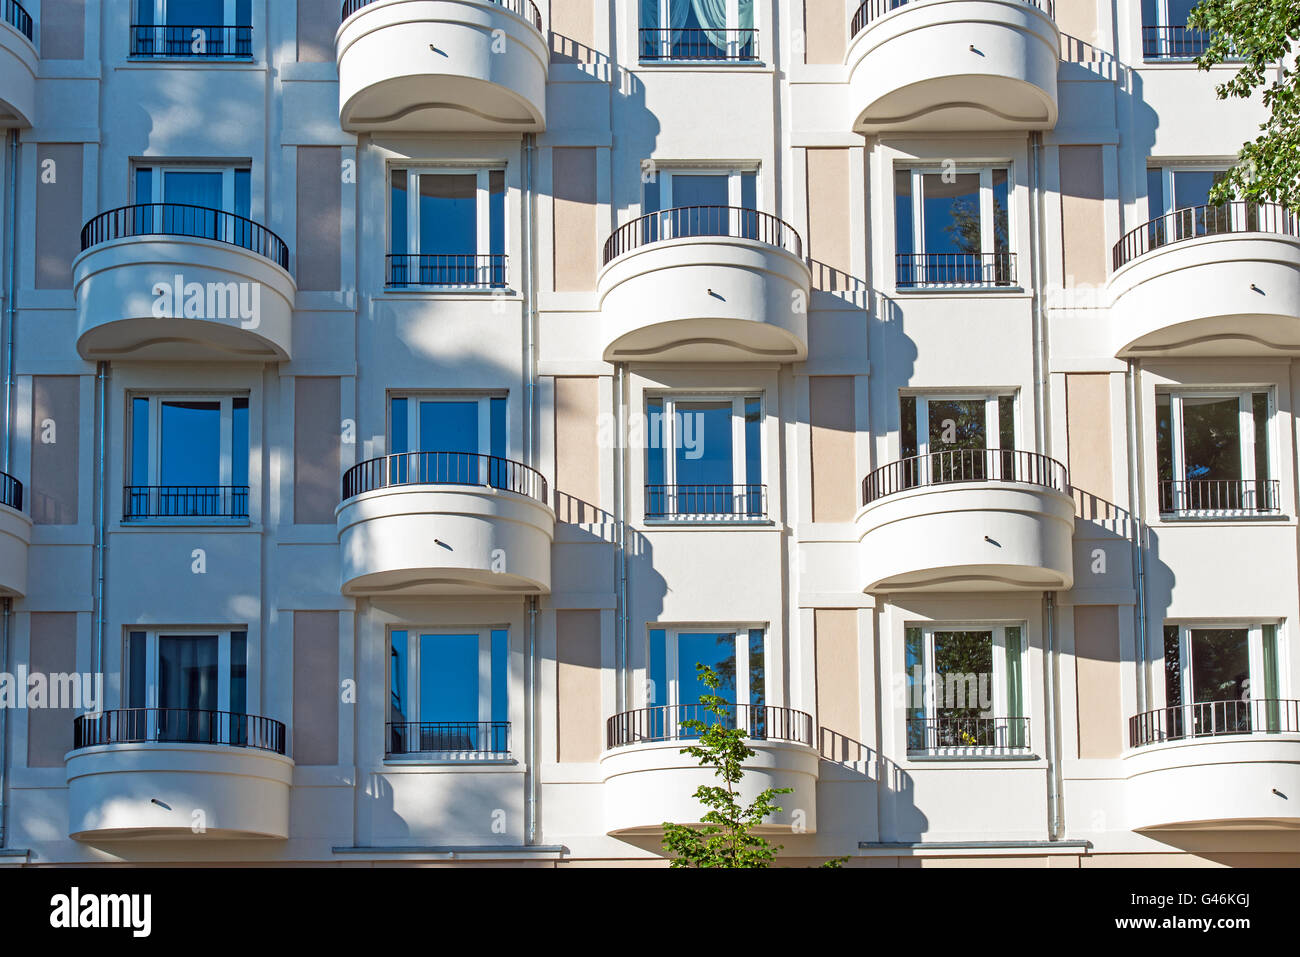 Facade of a modern apartment building with round balconies - Stock Image